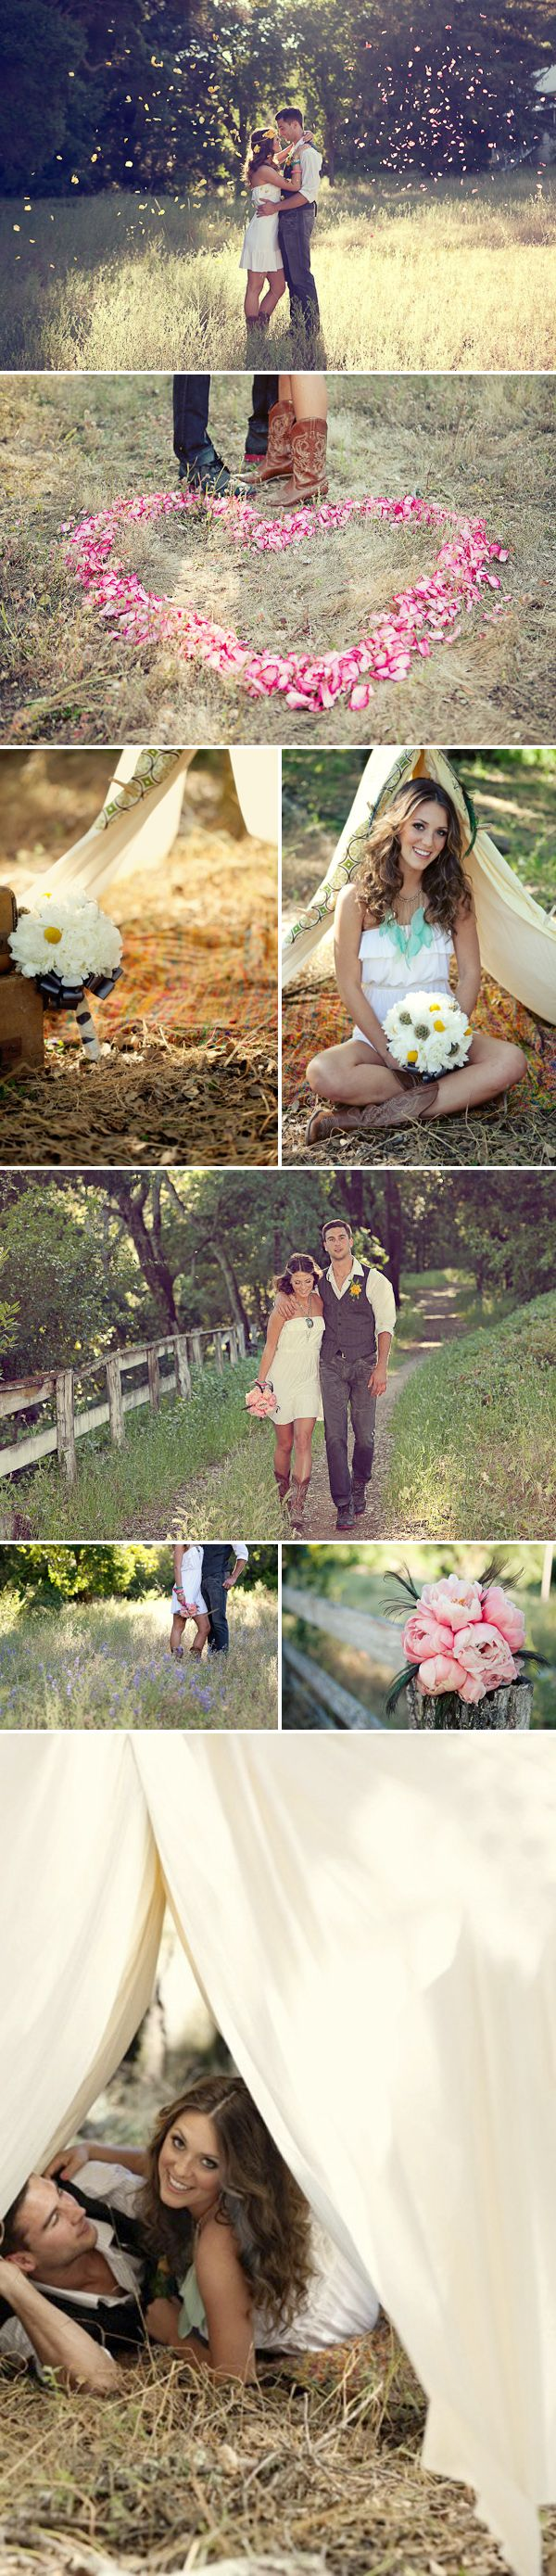 I love love love love this! Especially the flower petals and her simple dress with western boots...engagement photo idea?